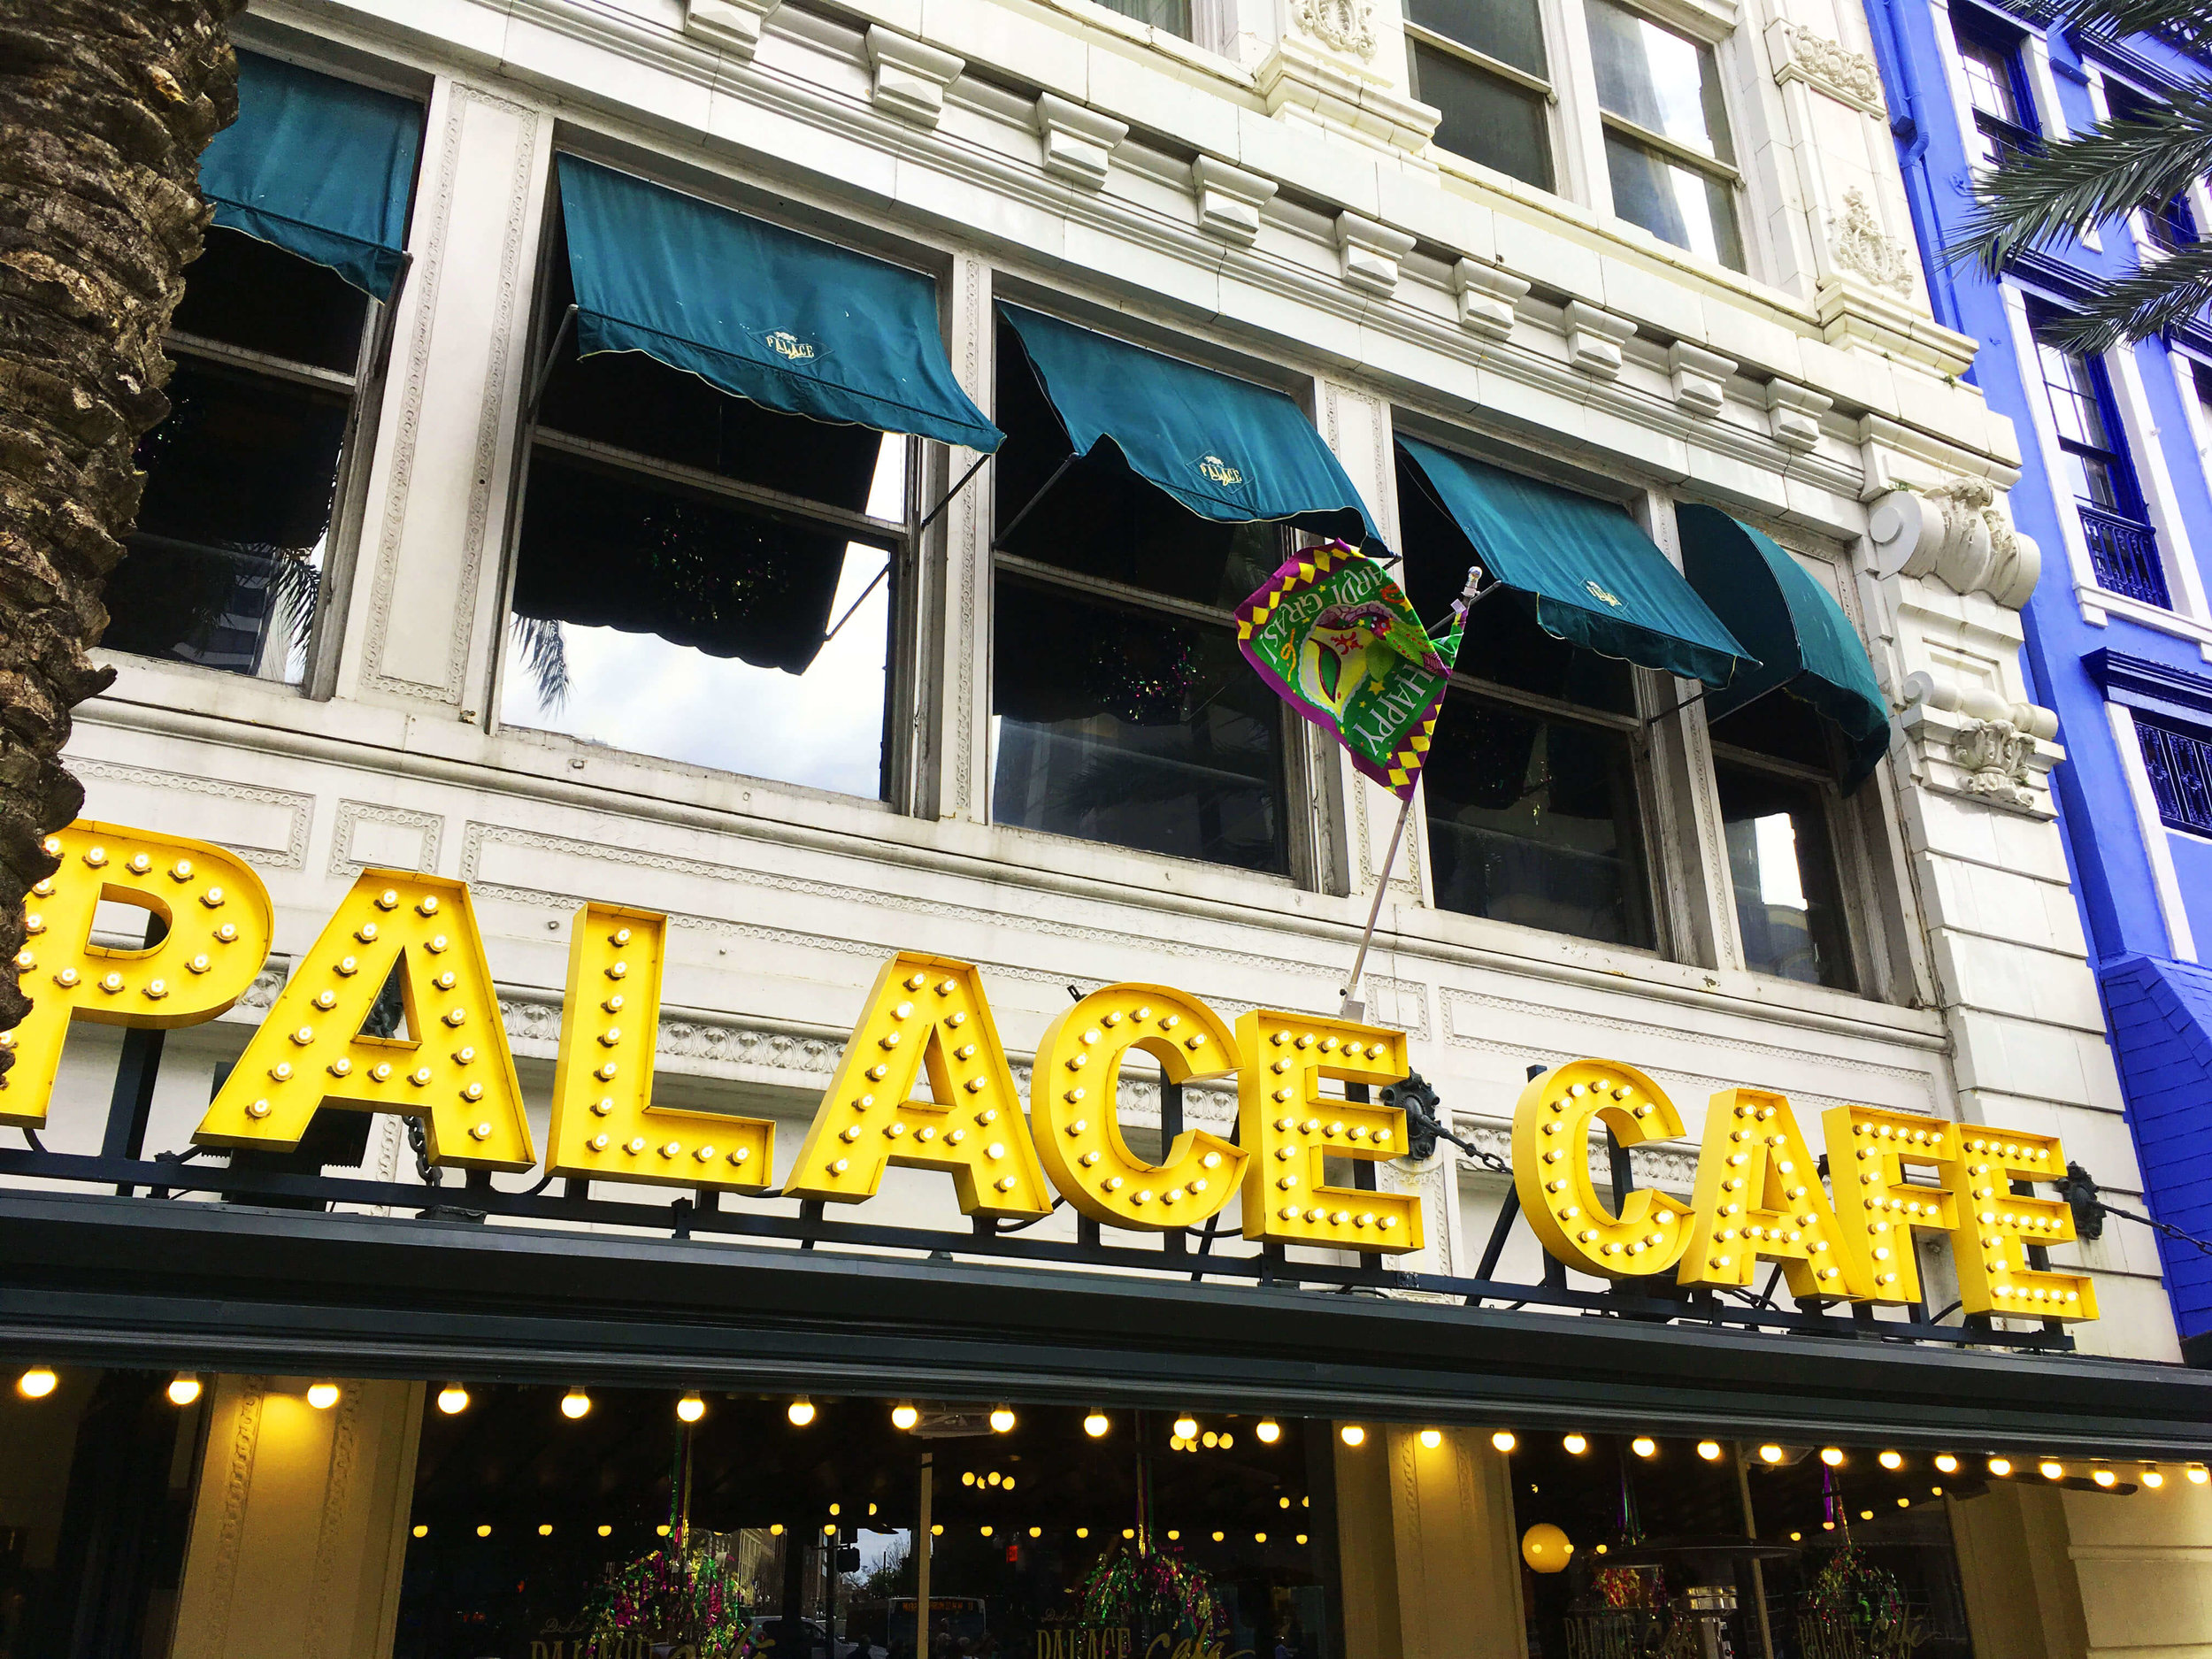 Palace Cafe Visit for Some Tasty Creole Cooking!